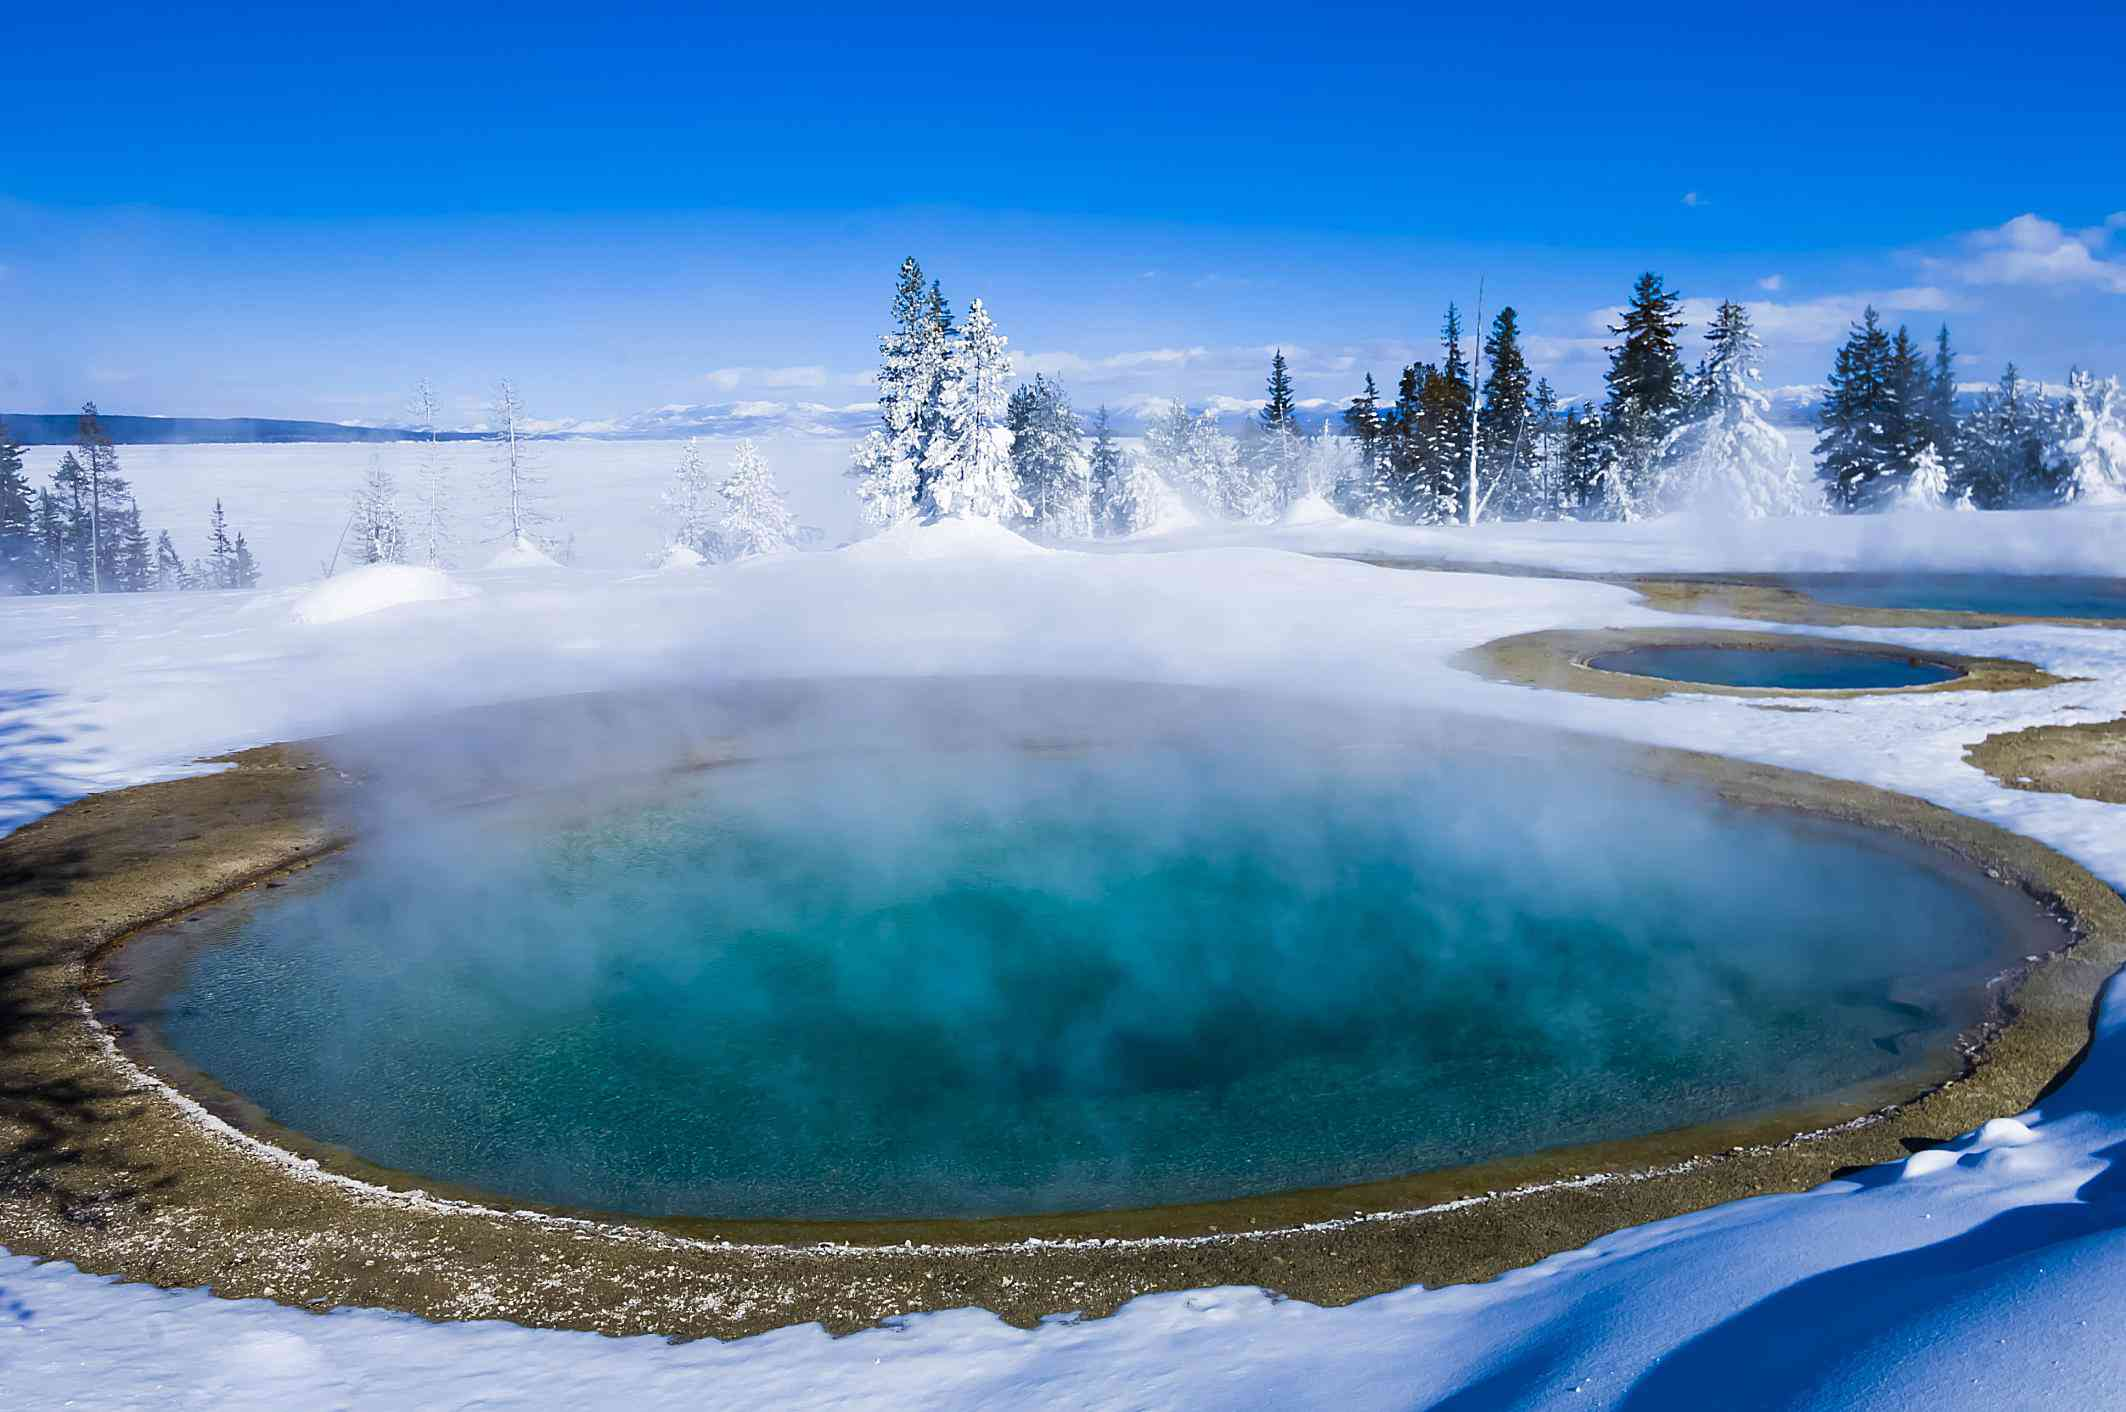 Yellowstone national park snow